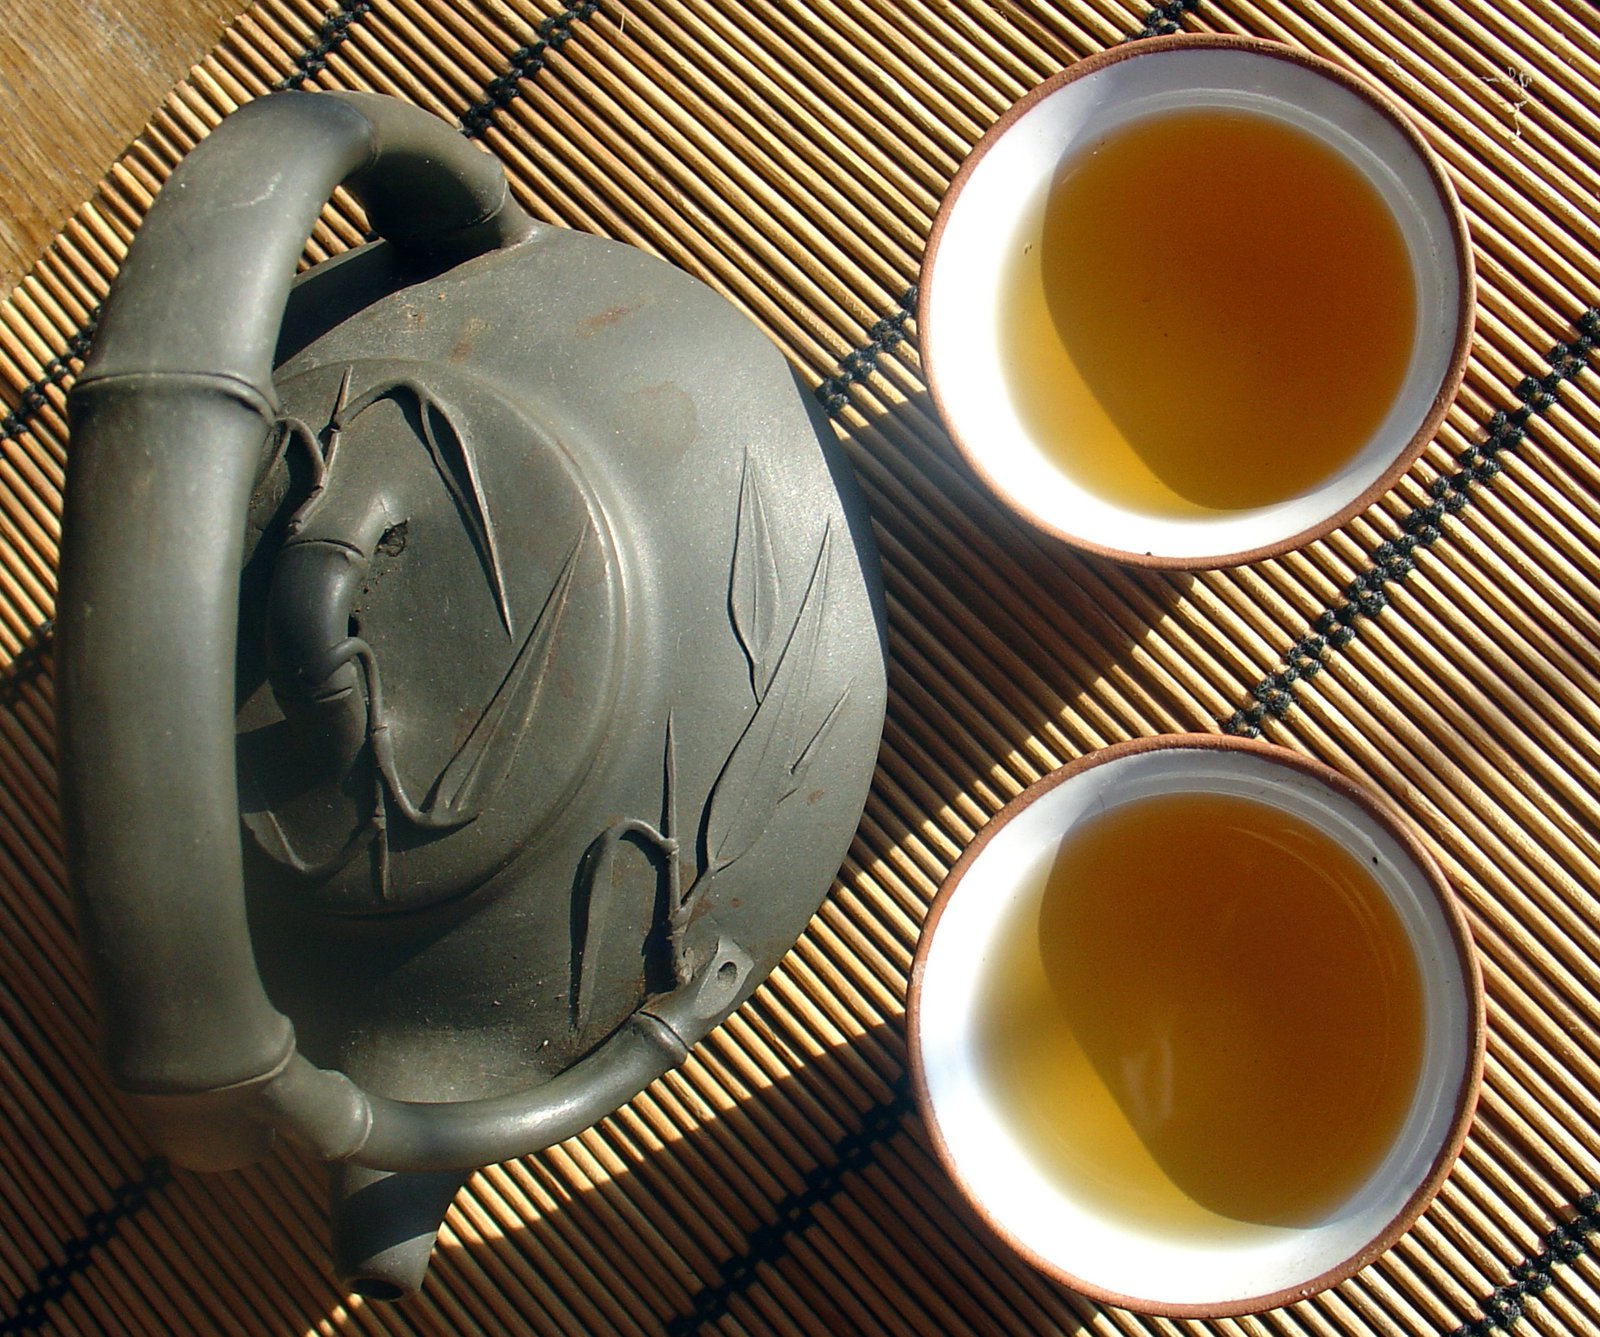 Delicious Cup of Bai Hao Oolong Tea